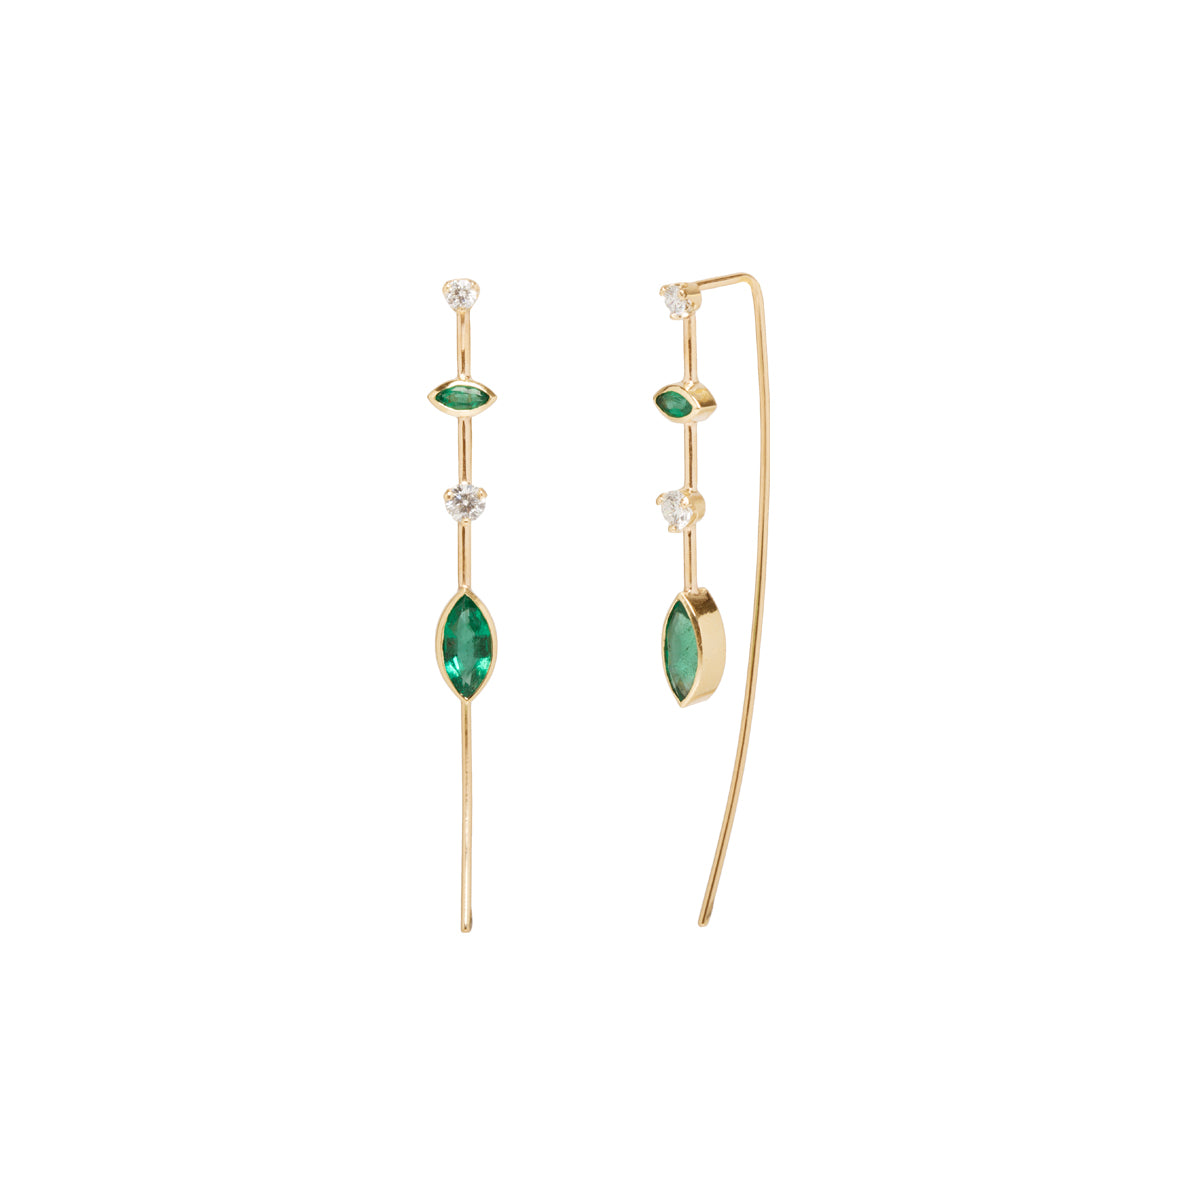 Zoë Chicco x Gemfields 14k mixed emerald and diamond wire earrings